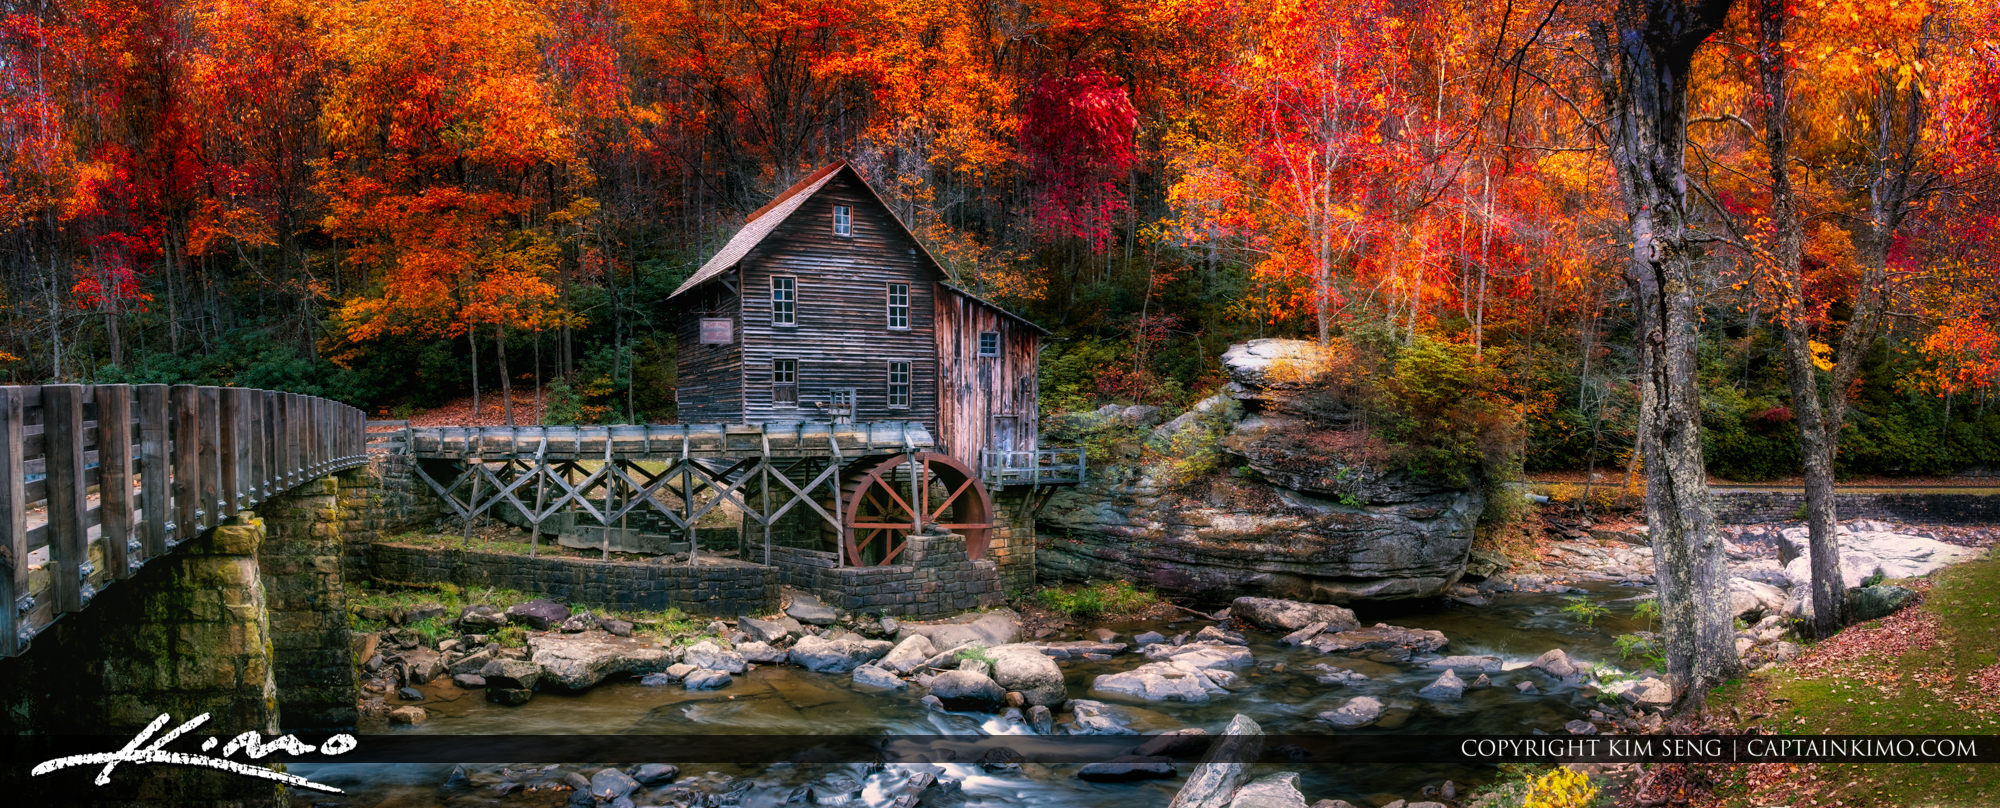 Grist Mill West Virginia at Babcock State Park